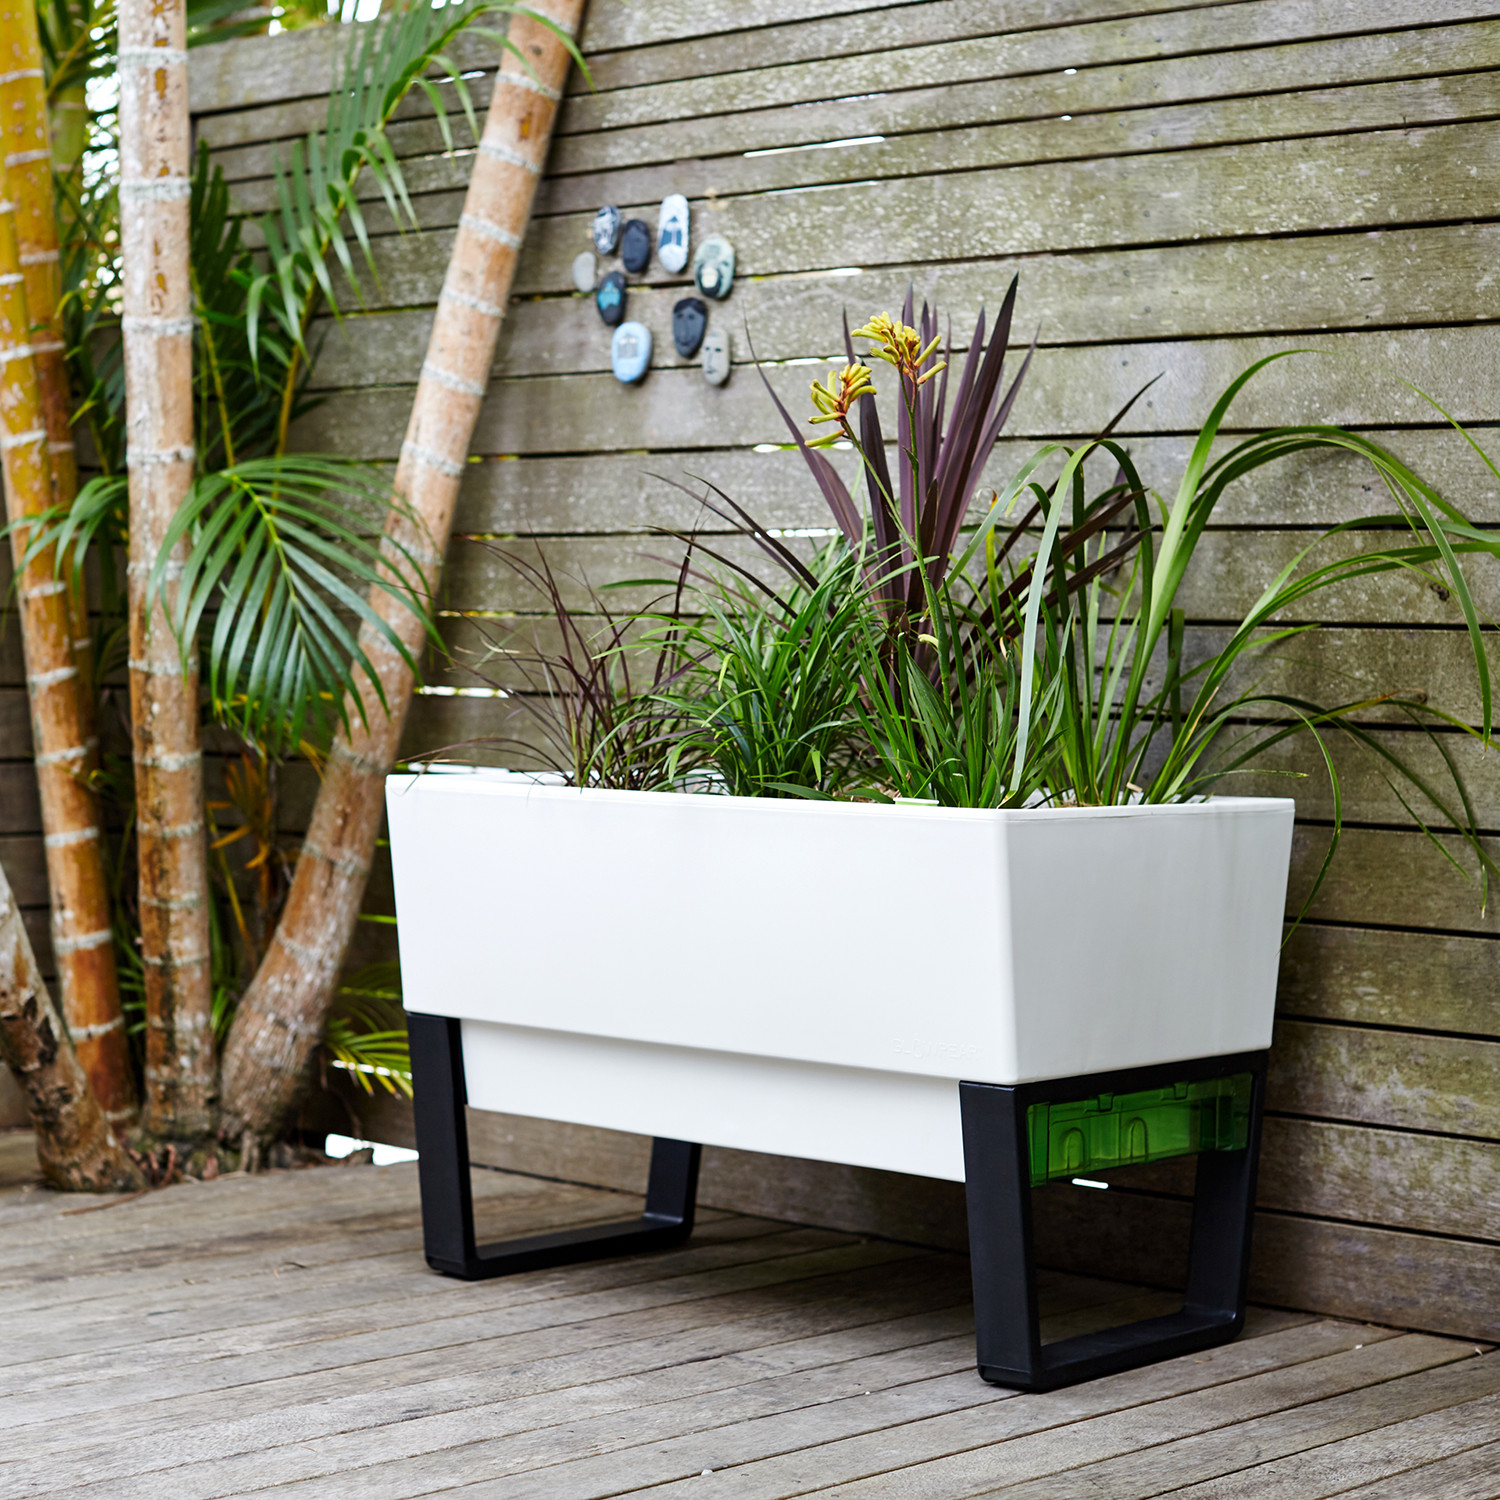 Glowpear Urban Garden Self Watering Planter Box: Christmas Gifts That Won't Cost The Earth